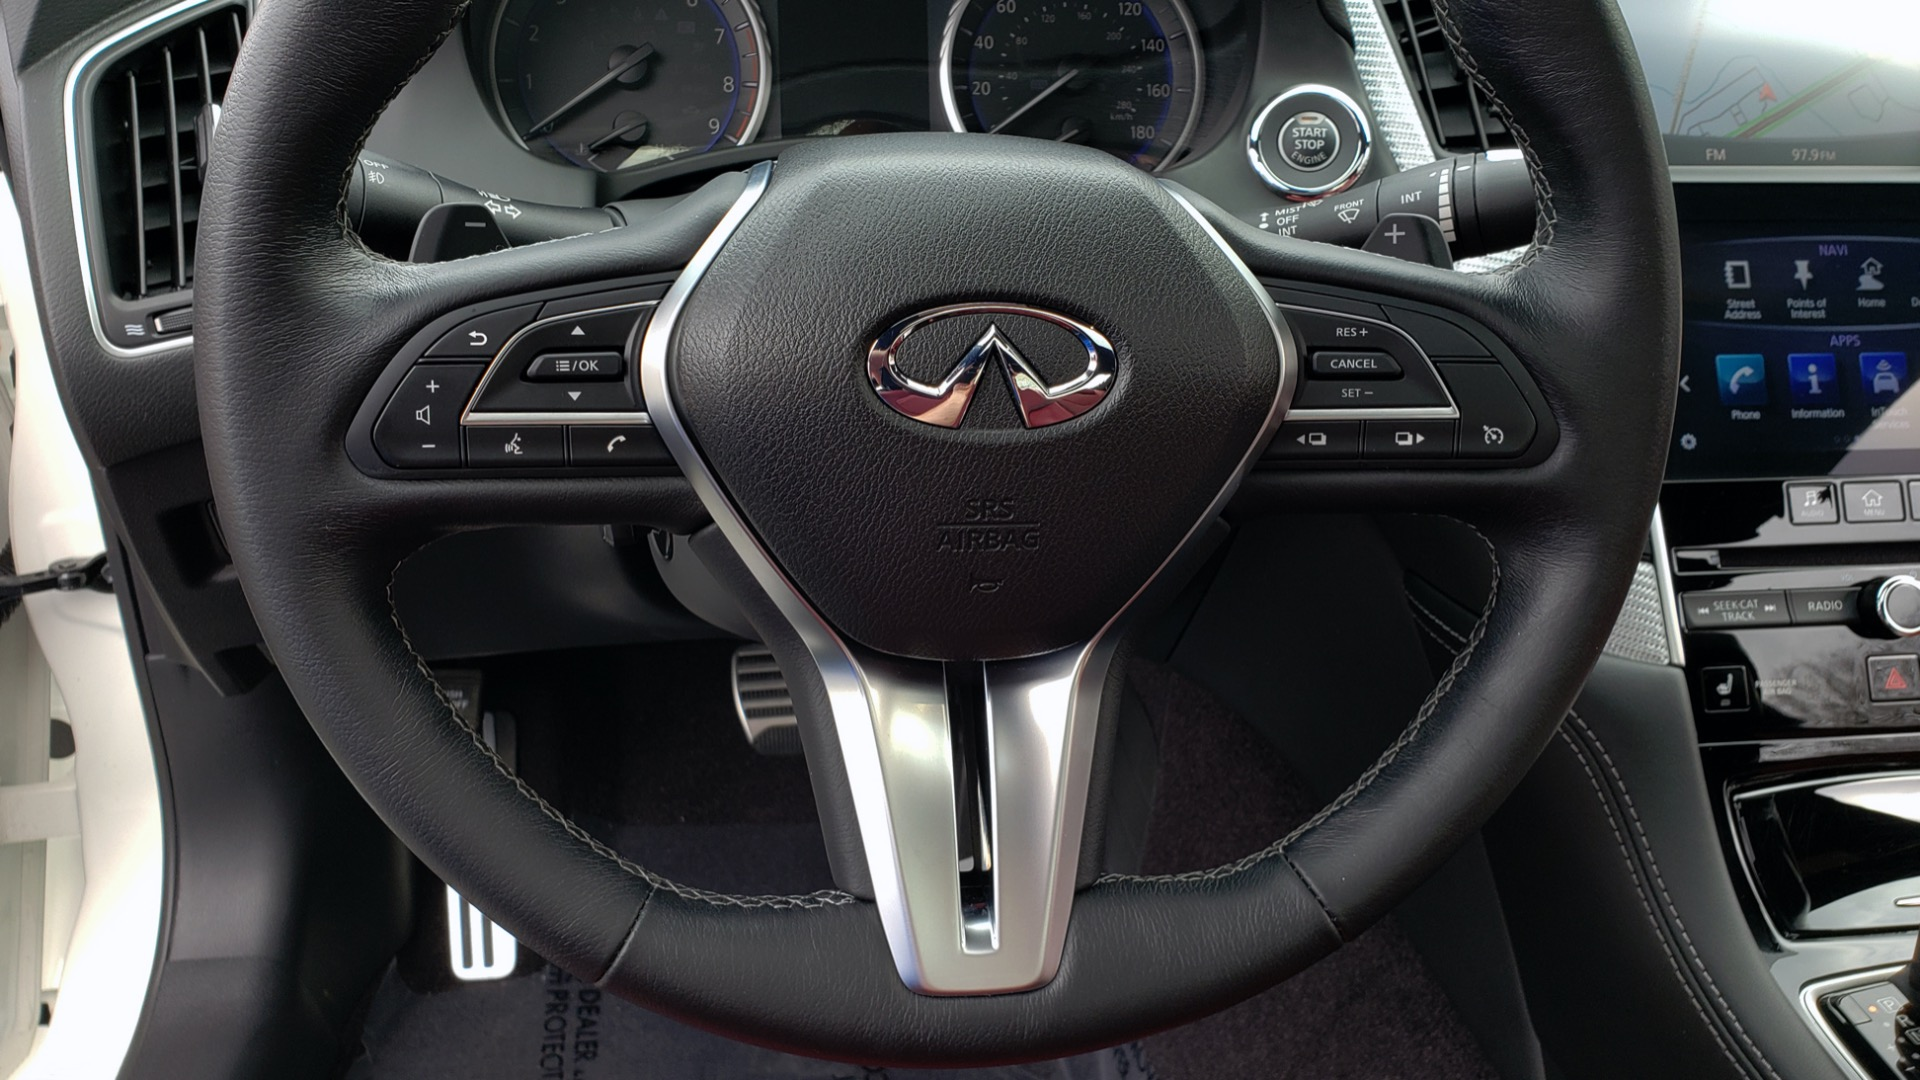 Used 2018 INFINITI Q60 RED SPORT 400 / SENSORY PKG / SUNROOF / NAV / REARVIEW for sale Sold at Formula Imports in Charlotte NC 28227 43